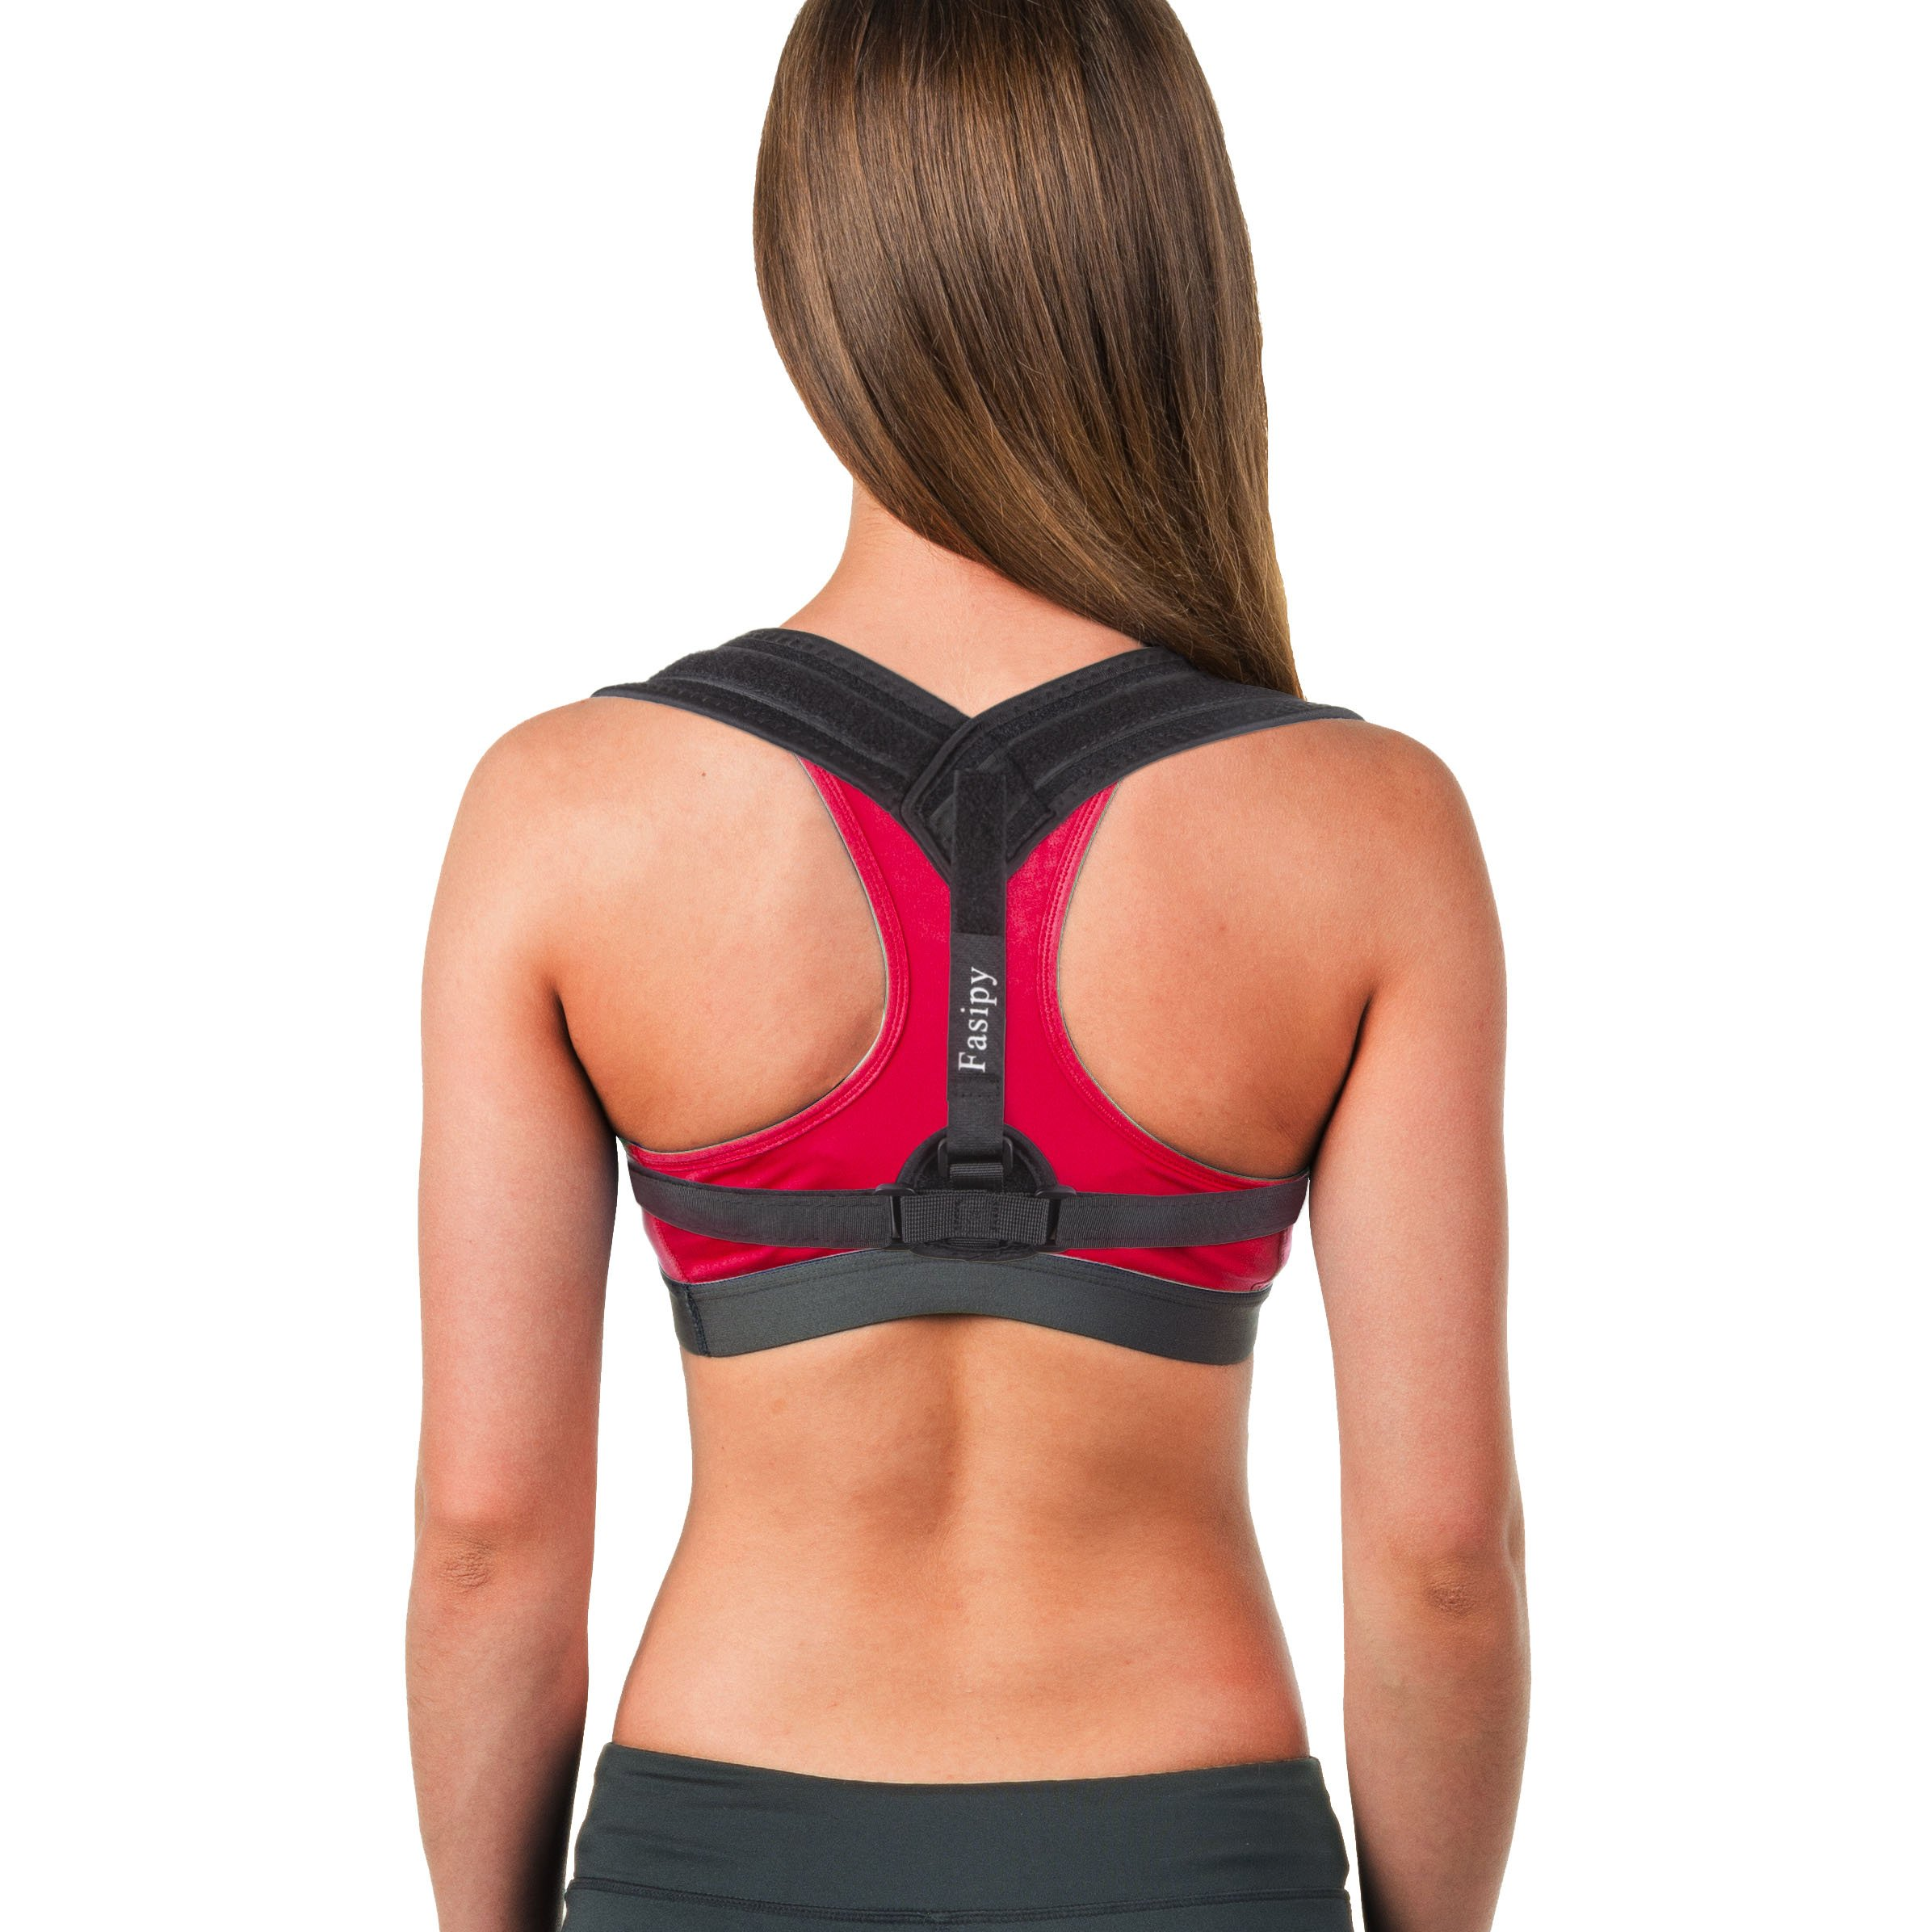 Back Posture Corrector for Women & Men, Fasipy Effective and Comfortable Posture Brace for Slouching & Hunching, Adjustable Clavicle Support for Shoulder & Neck Pain Relief